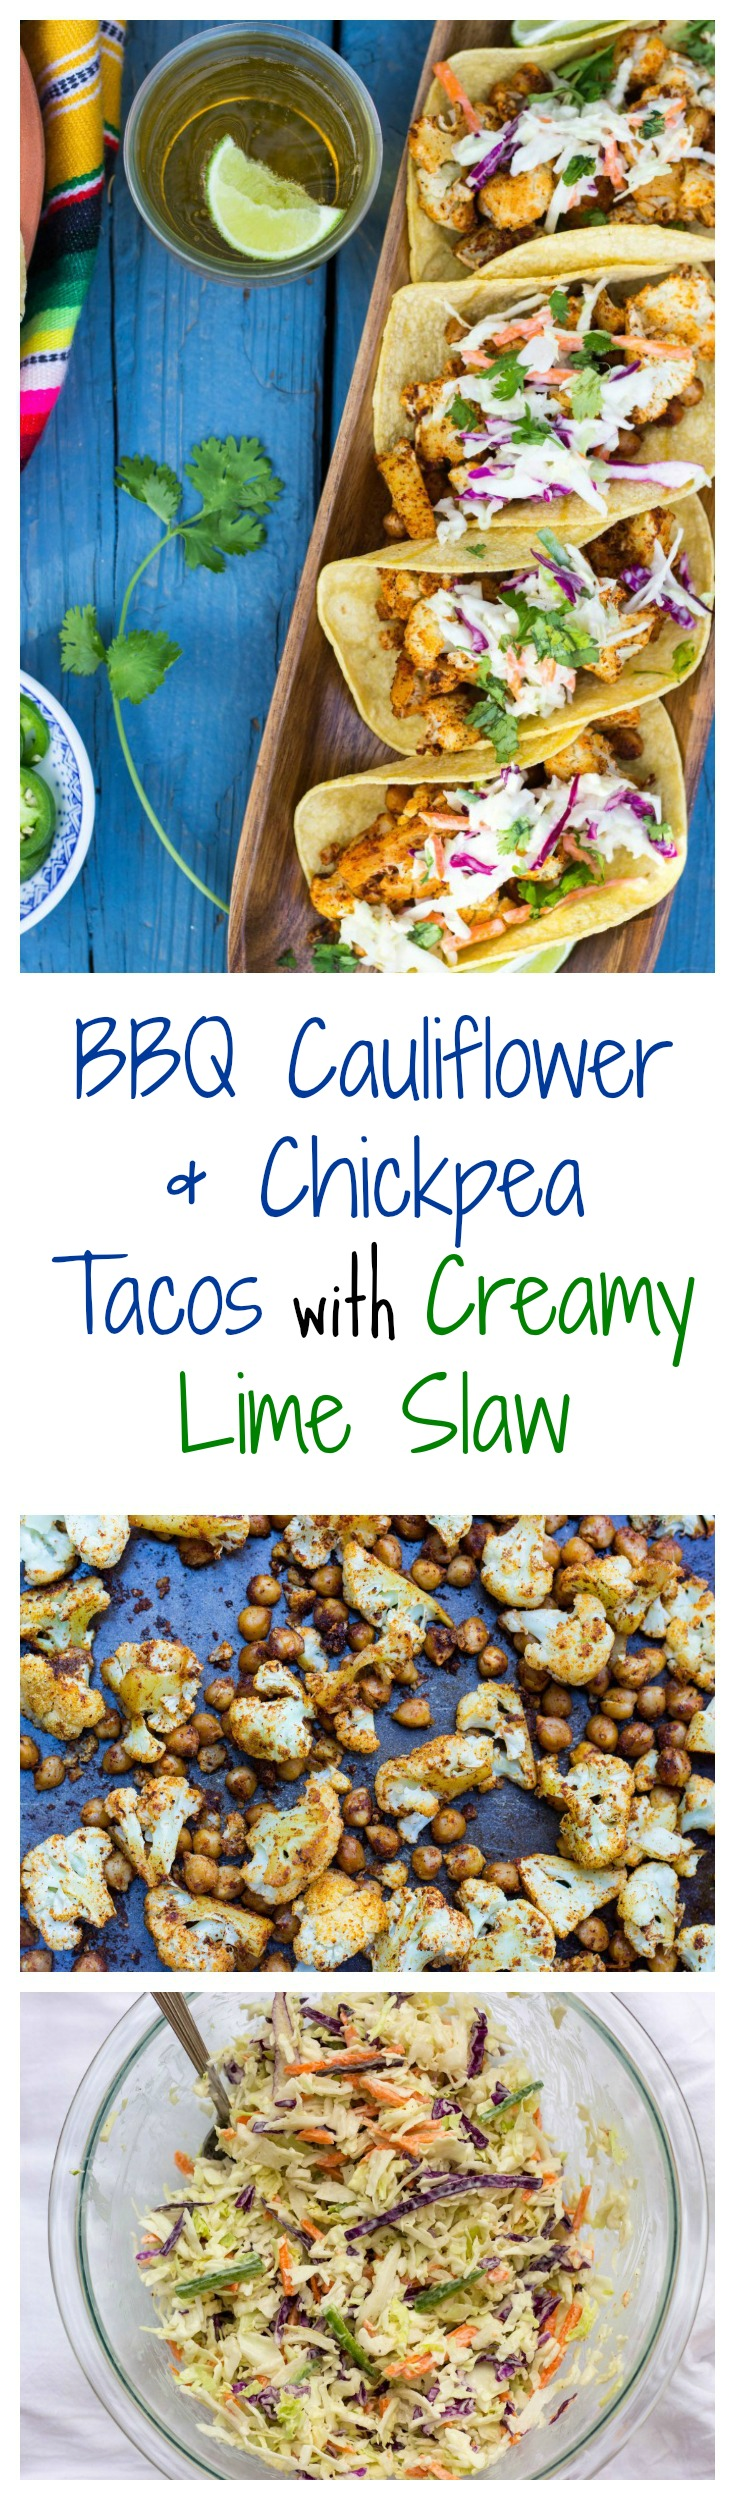 BBQ-Cauliflower-Chickpea-Tacos-with-Creamy-Lime-Slaw